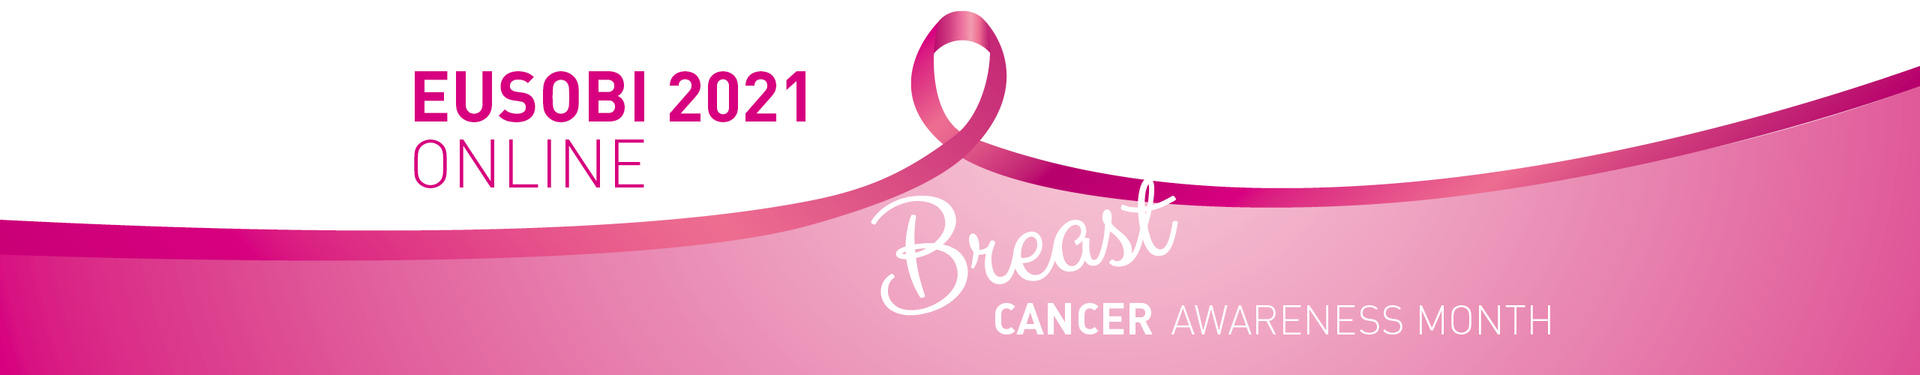 EUSOBI 2021 ONLINE in the Breast Cancer Awareness Month